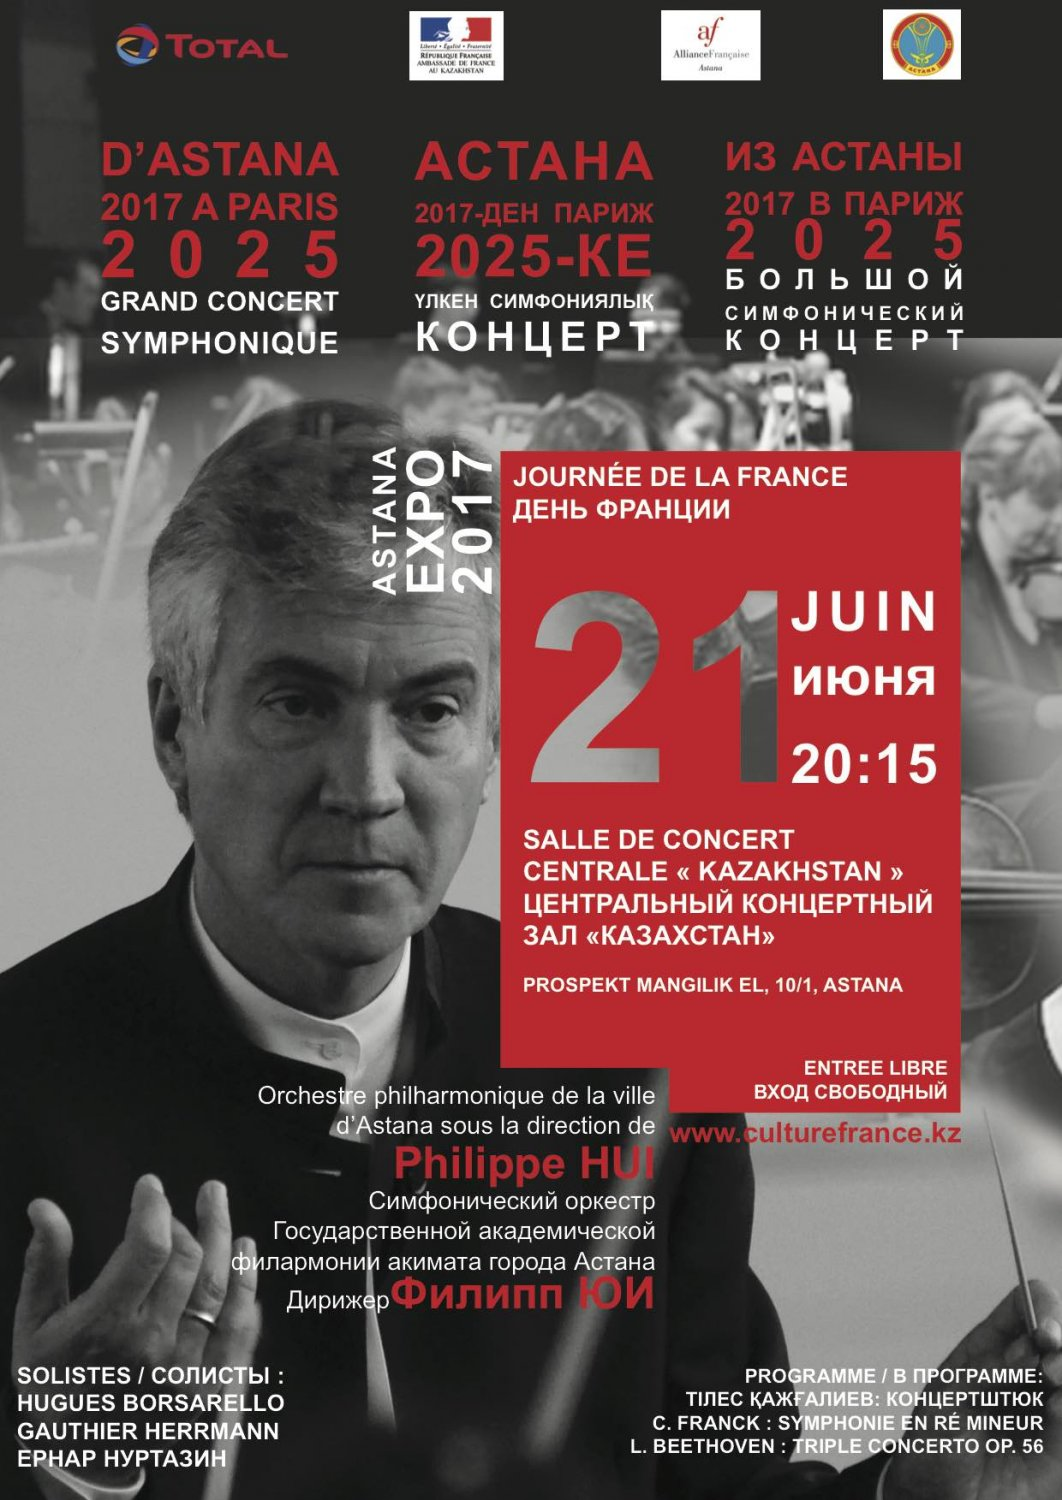 Grand concert symphonique : d'Astana 2017 à Paris 2025